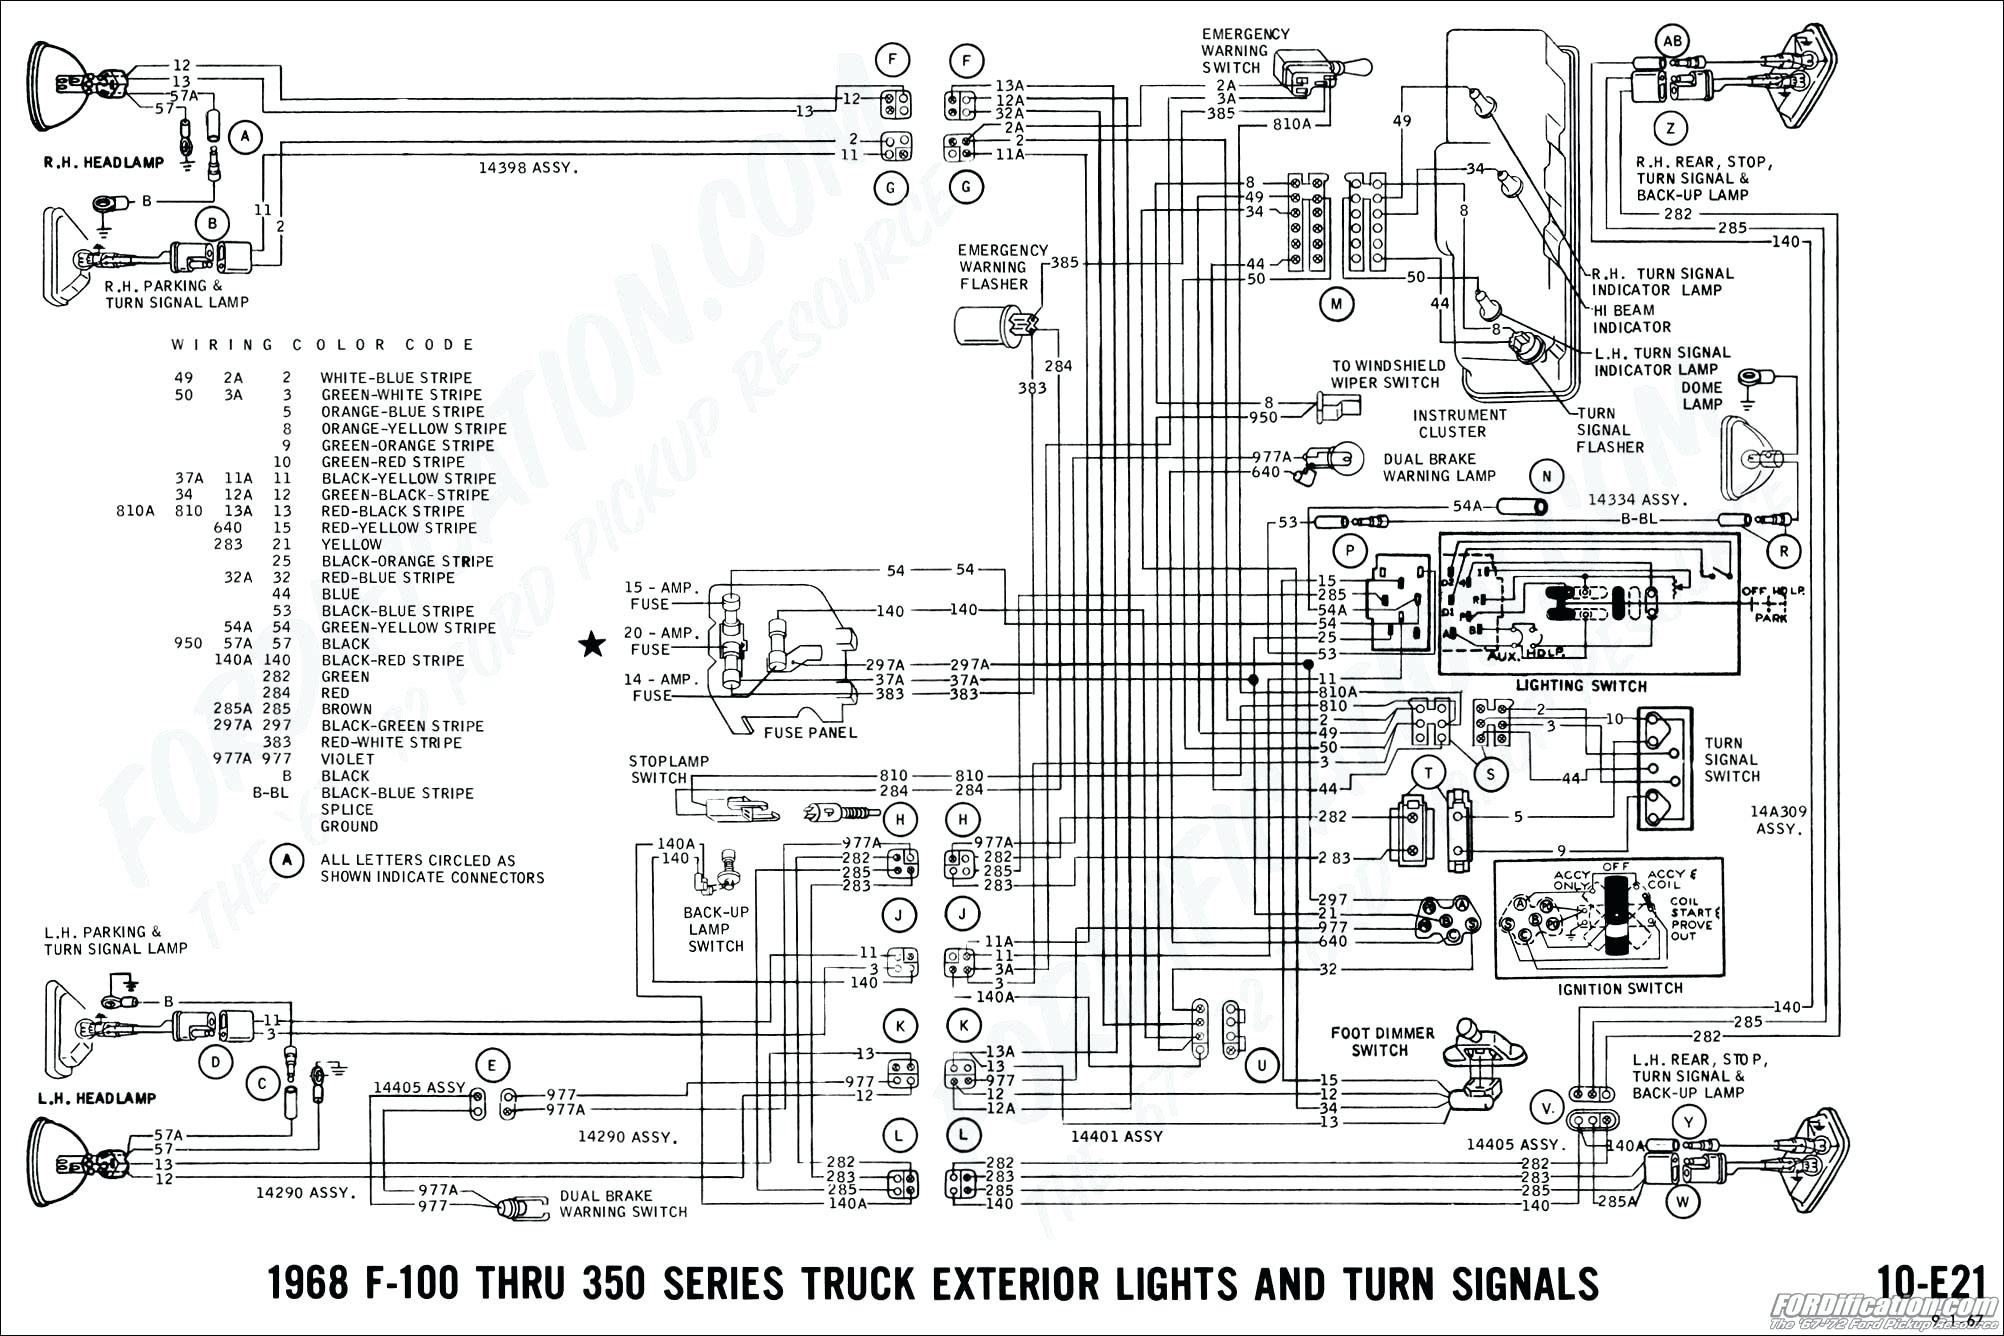 gm turn signal diagram circuits symbols diagrams u2022 rh amdrums co uk chevy cruze turn signal wiring diagram 57 chevy turn signal wiring diagram